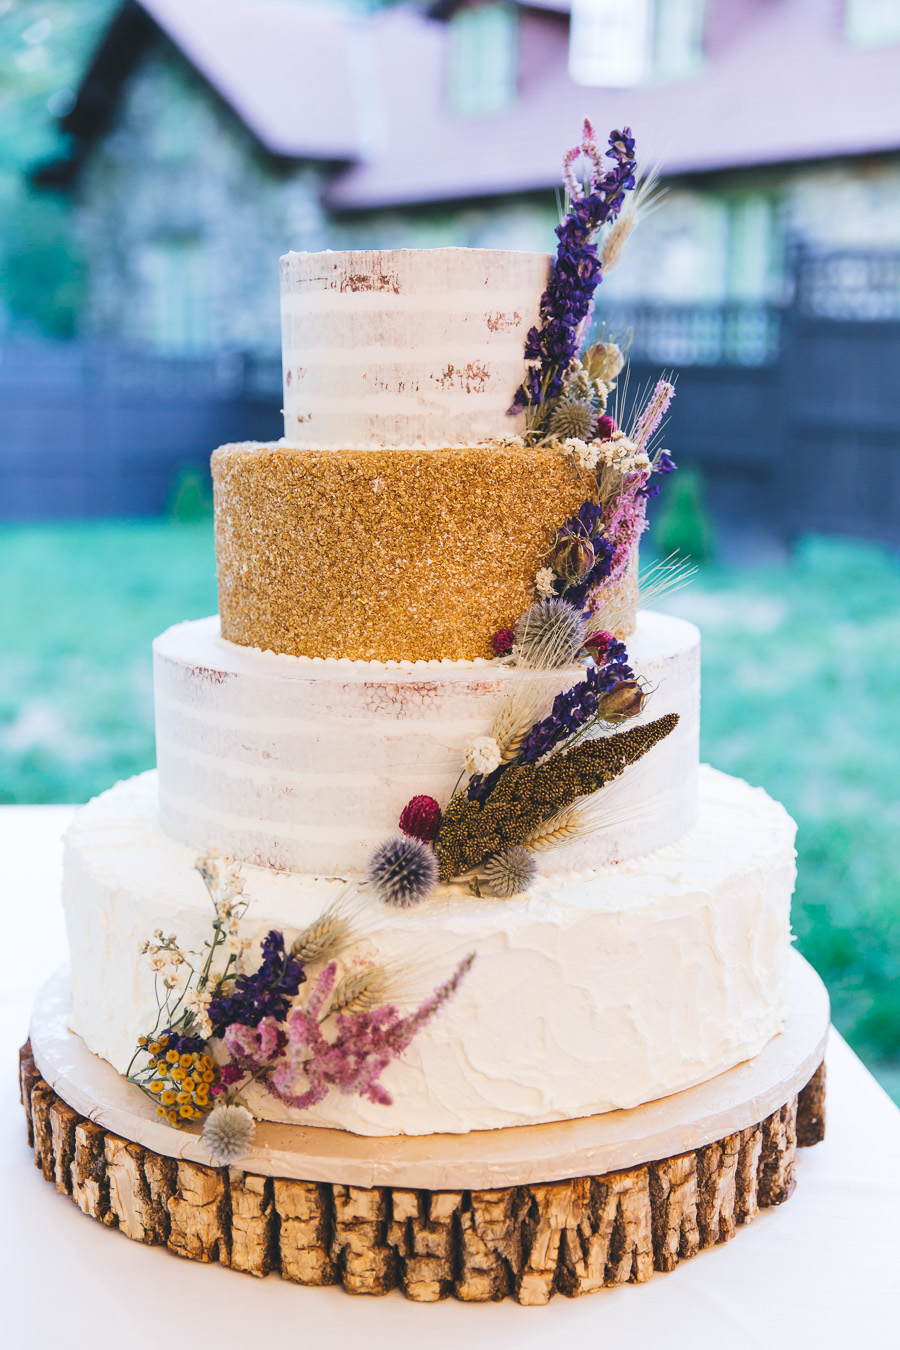 rustic wedding cakes - photo by Leona Campbell Photography http://ruffledblog.com/fall-wedding-inspiration-from-the-big-fake-wedding